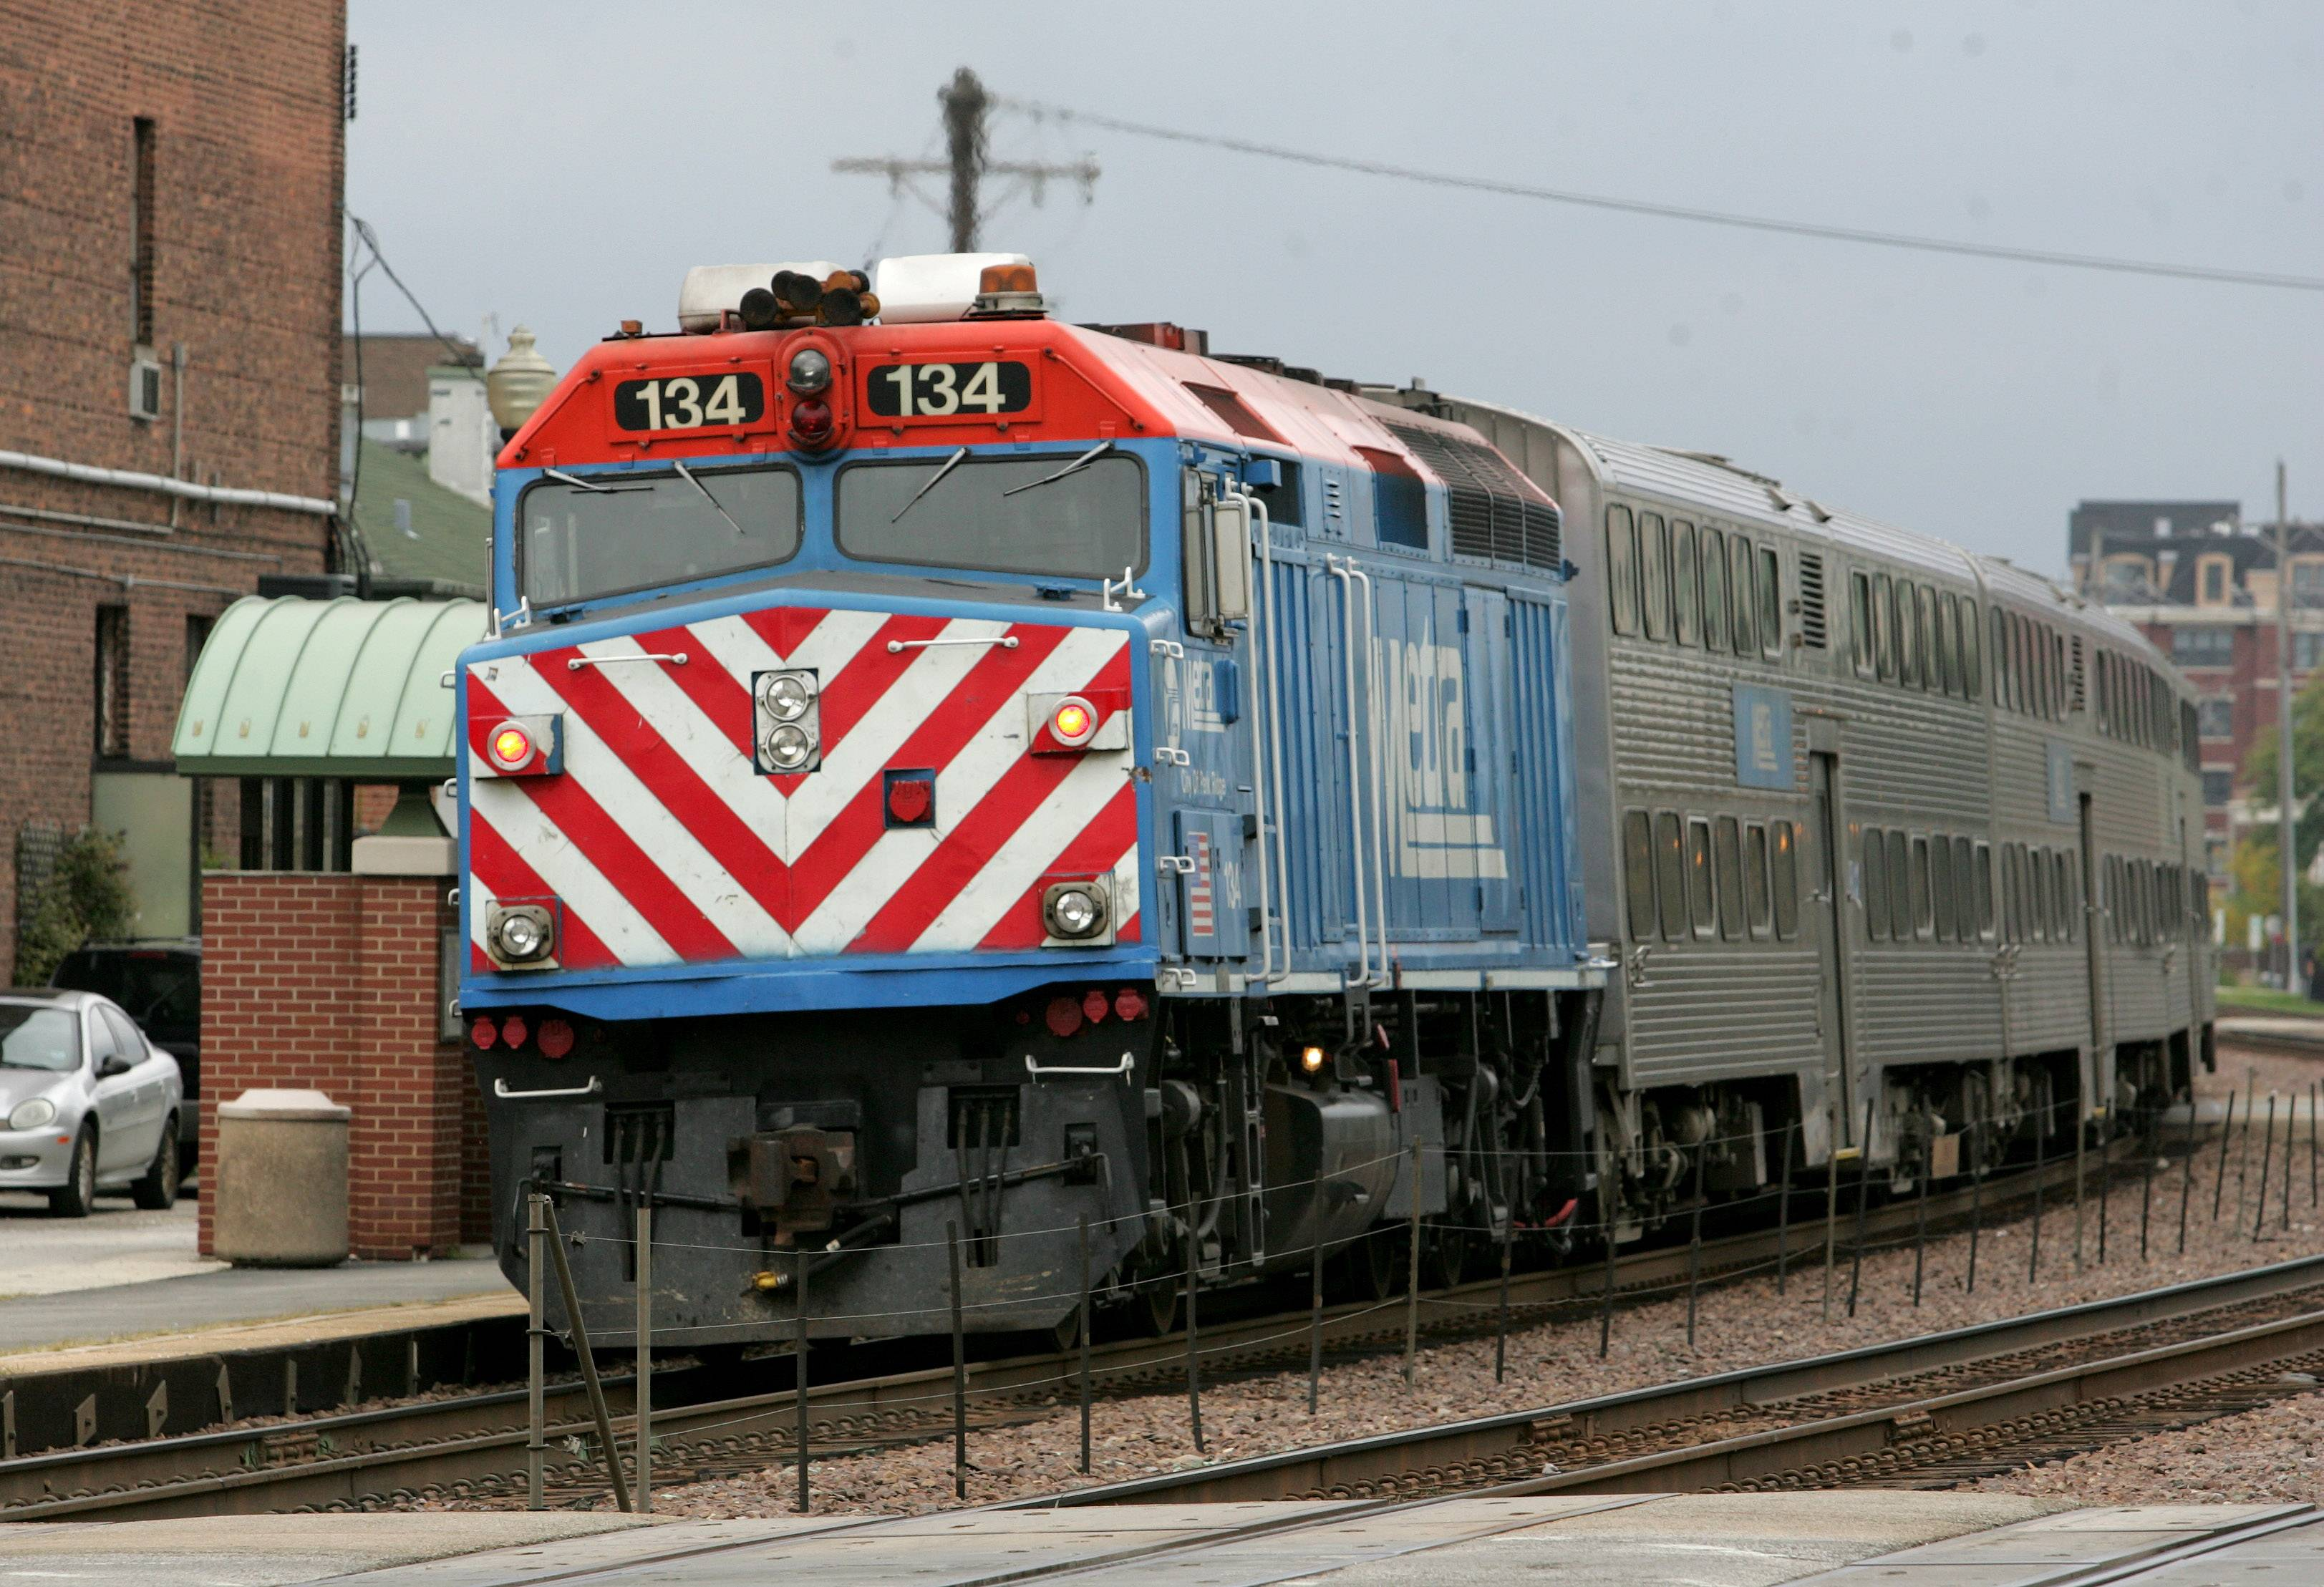 Fare increases are on track for Metra riders if the board of directors agrees.